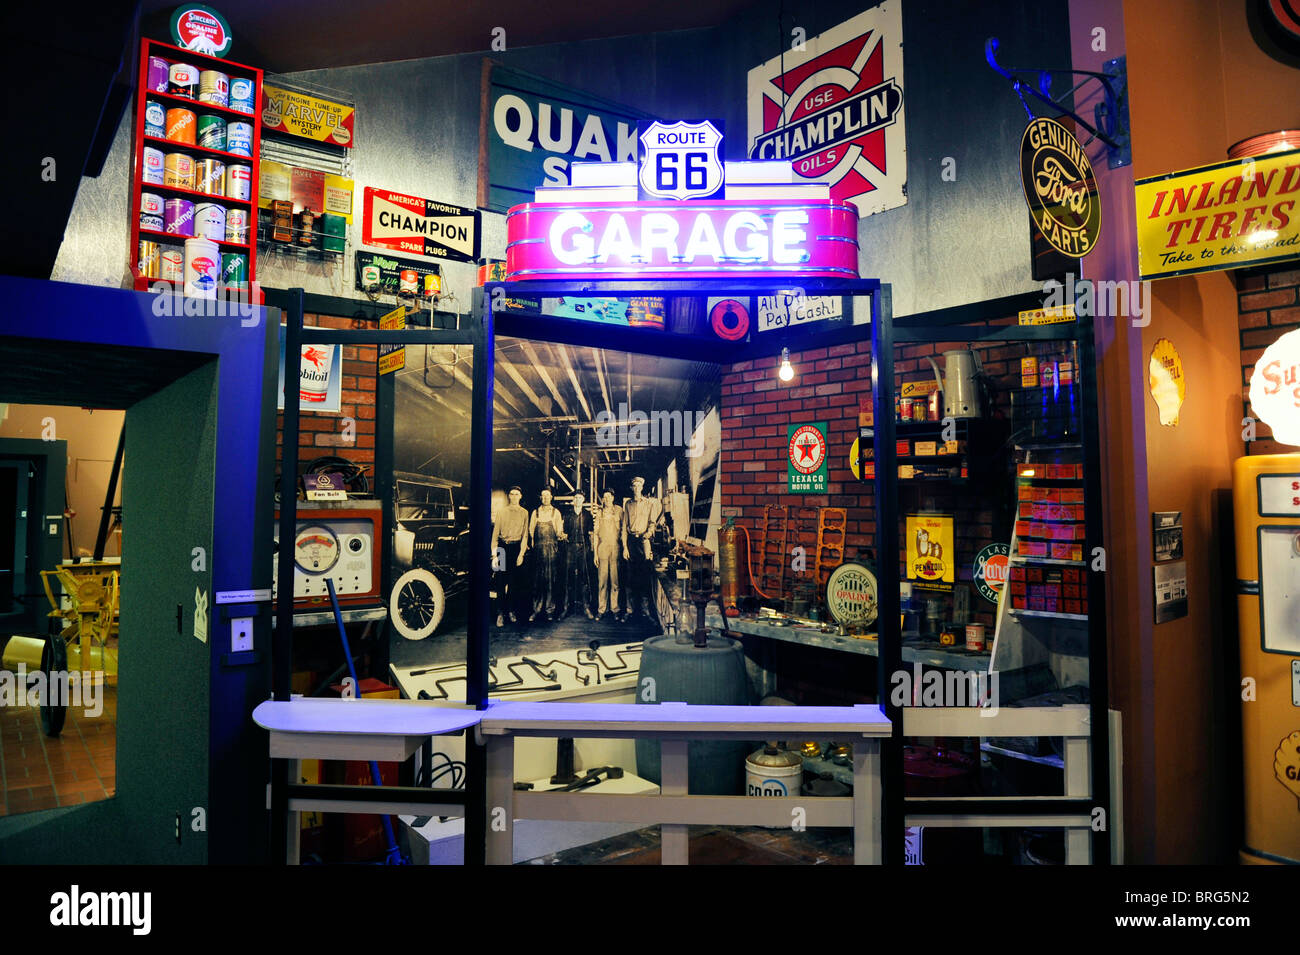 old fashioned garage display route 66 museum clinton. Black Bedroom Furniture Sets. Home Design Ideas